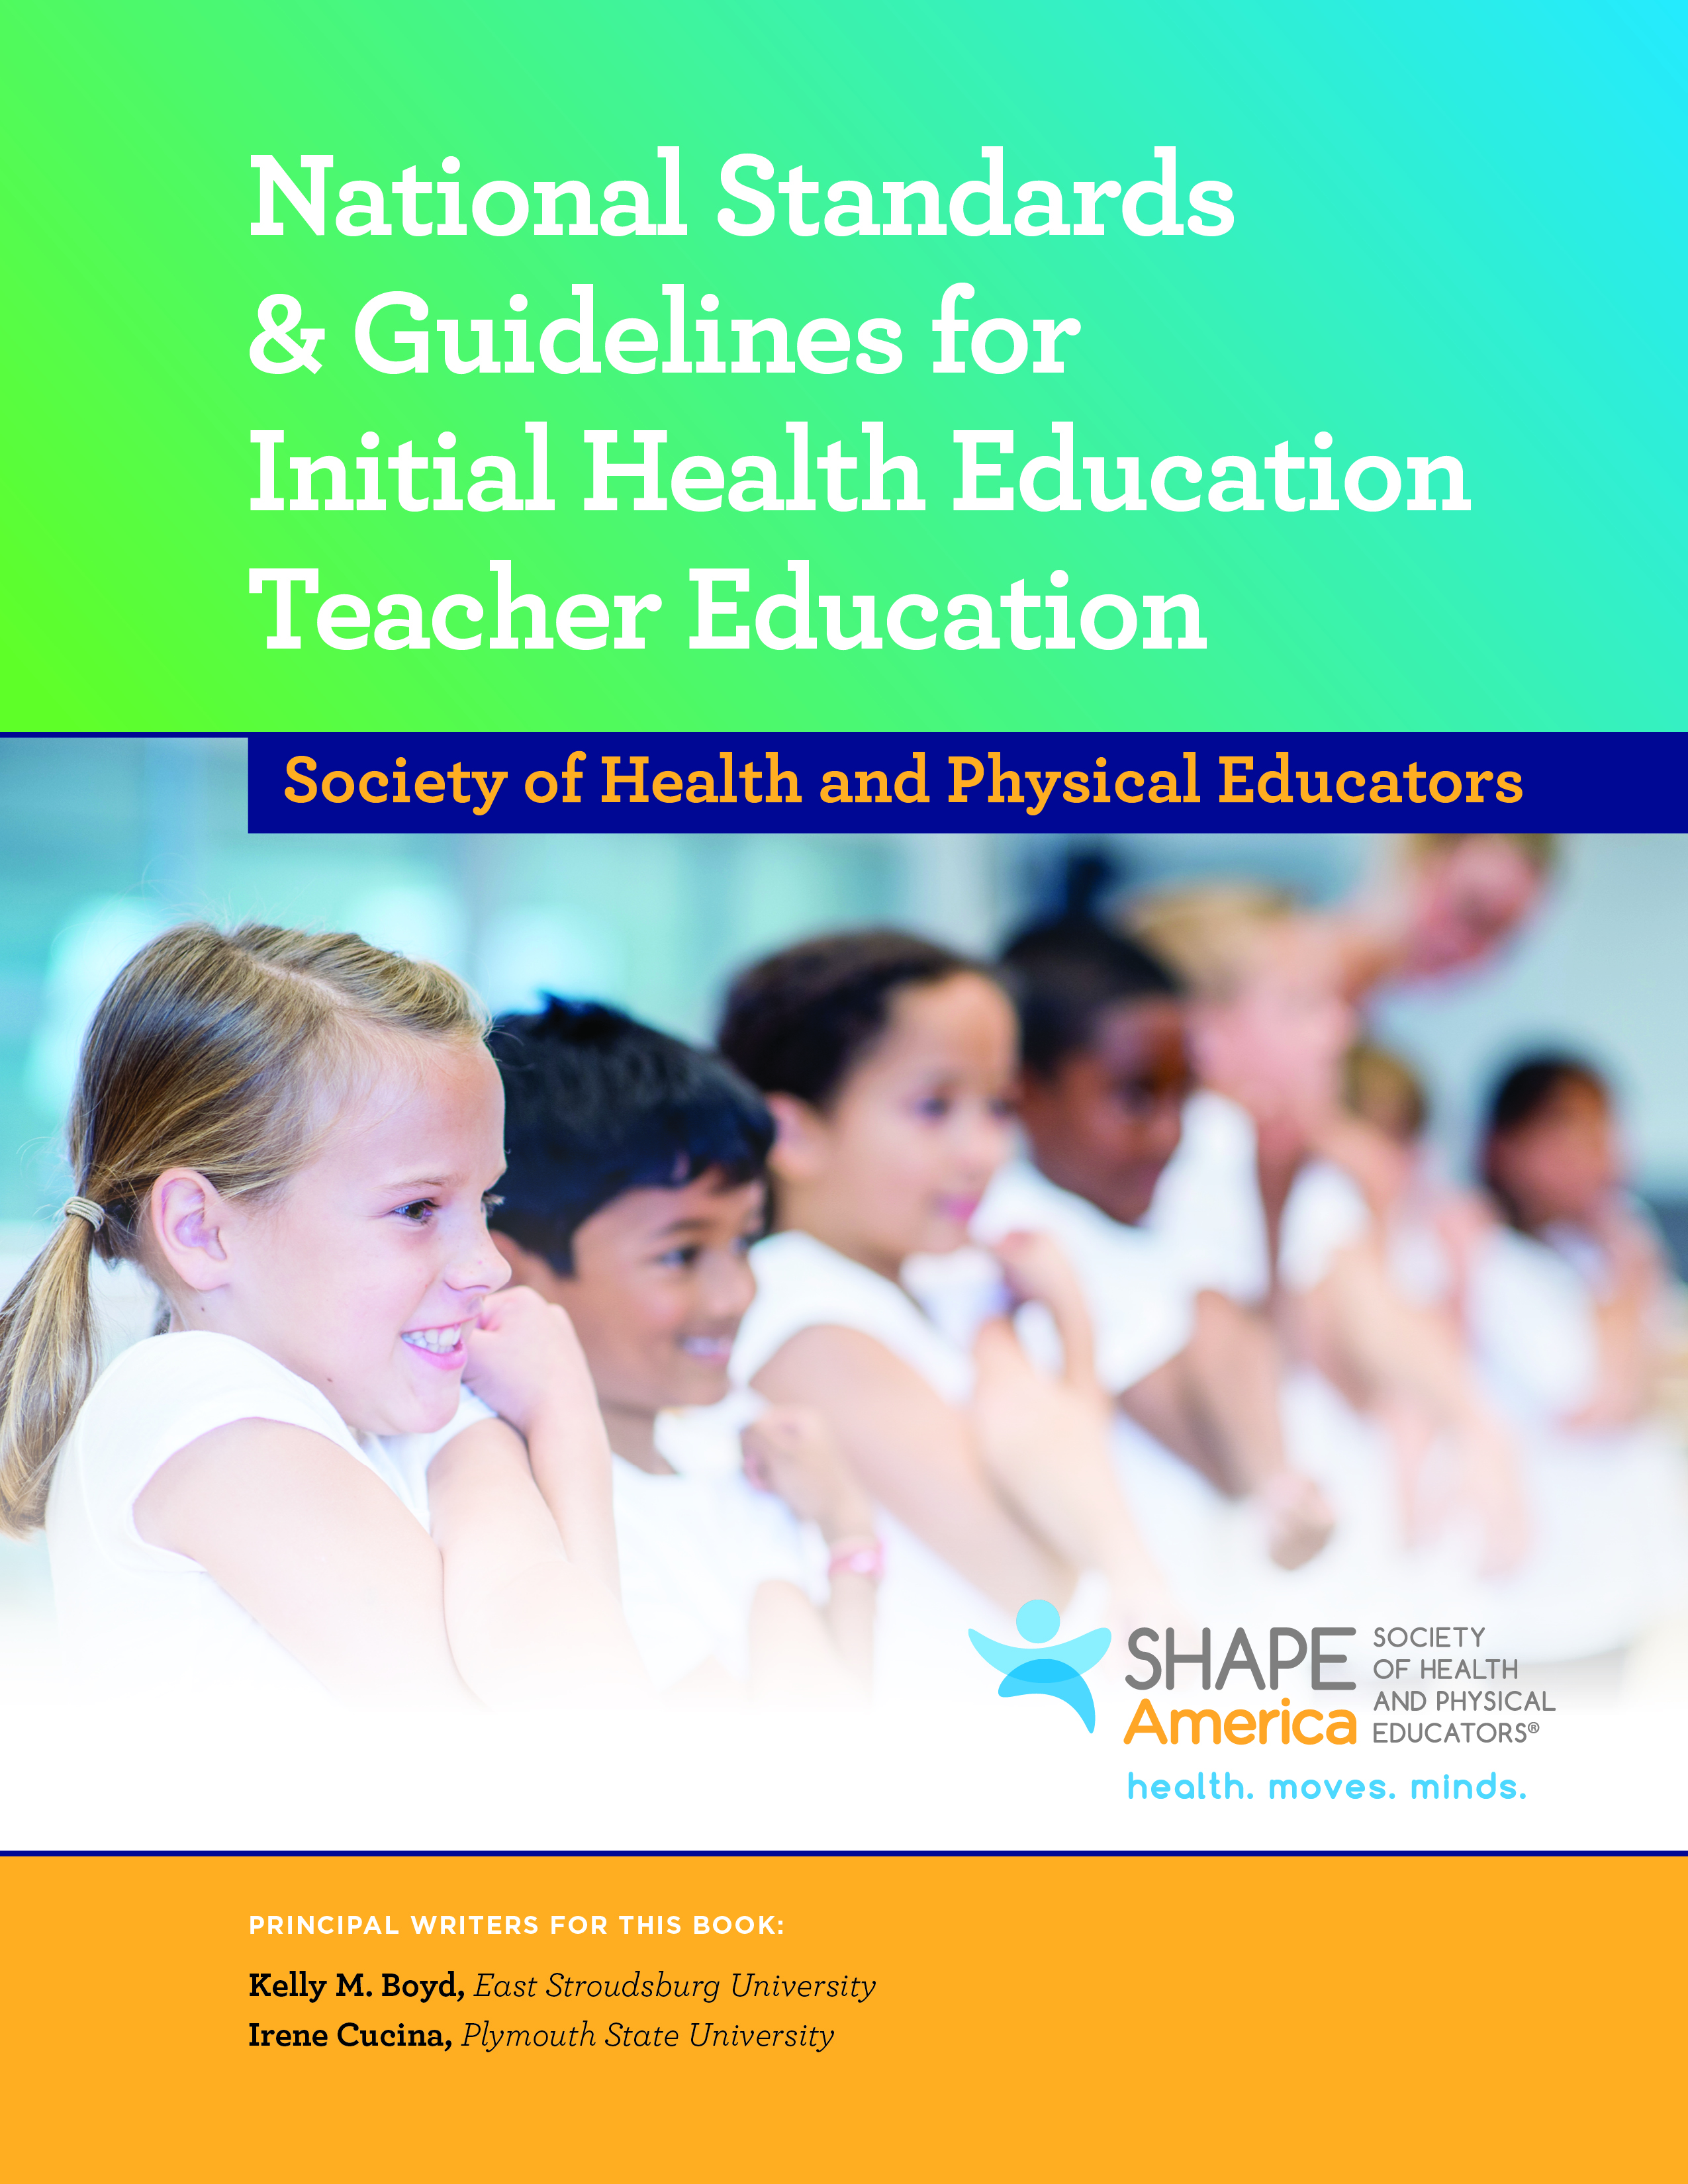 National Standards & Guidelines for Initial Health Education